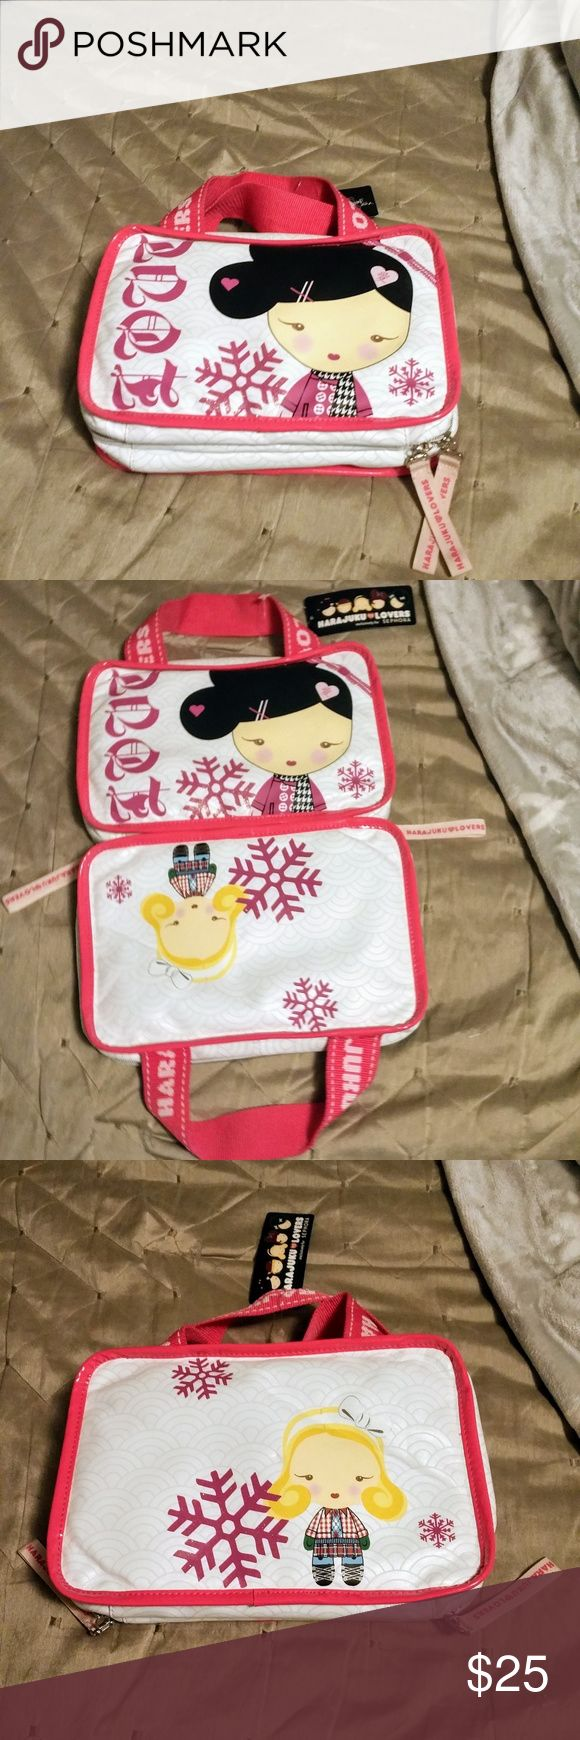 NWT! HARAJUKU ♥ LOVERS for Sephora – Bag So Cute! Brand New With Tags! Sephora…